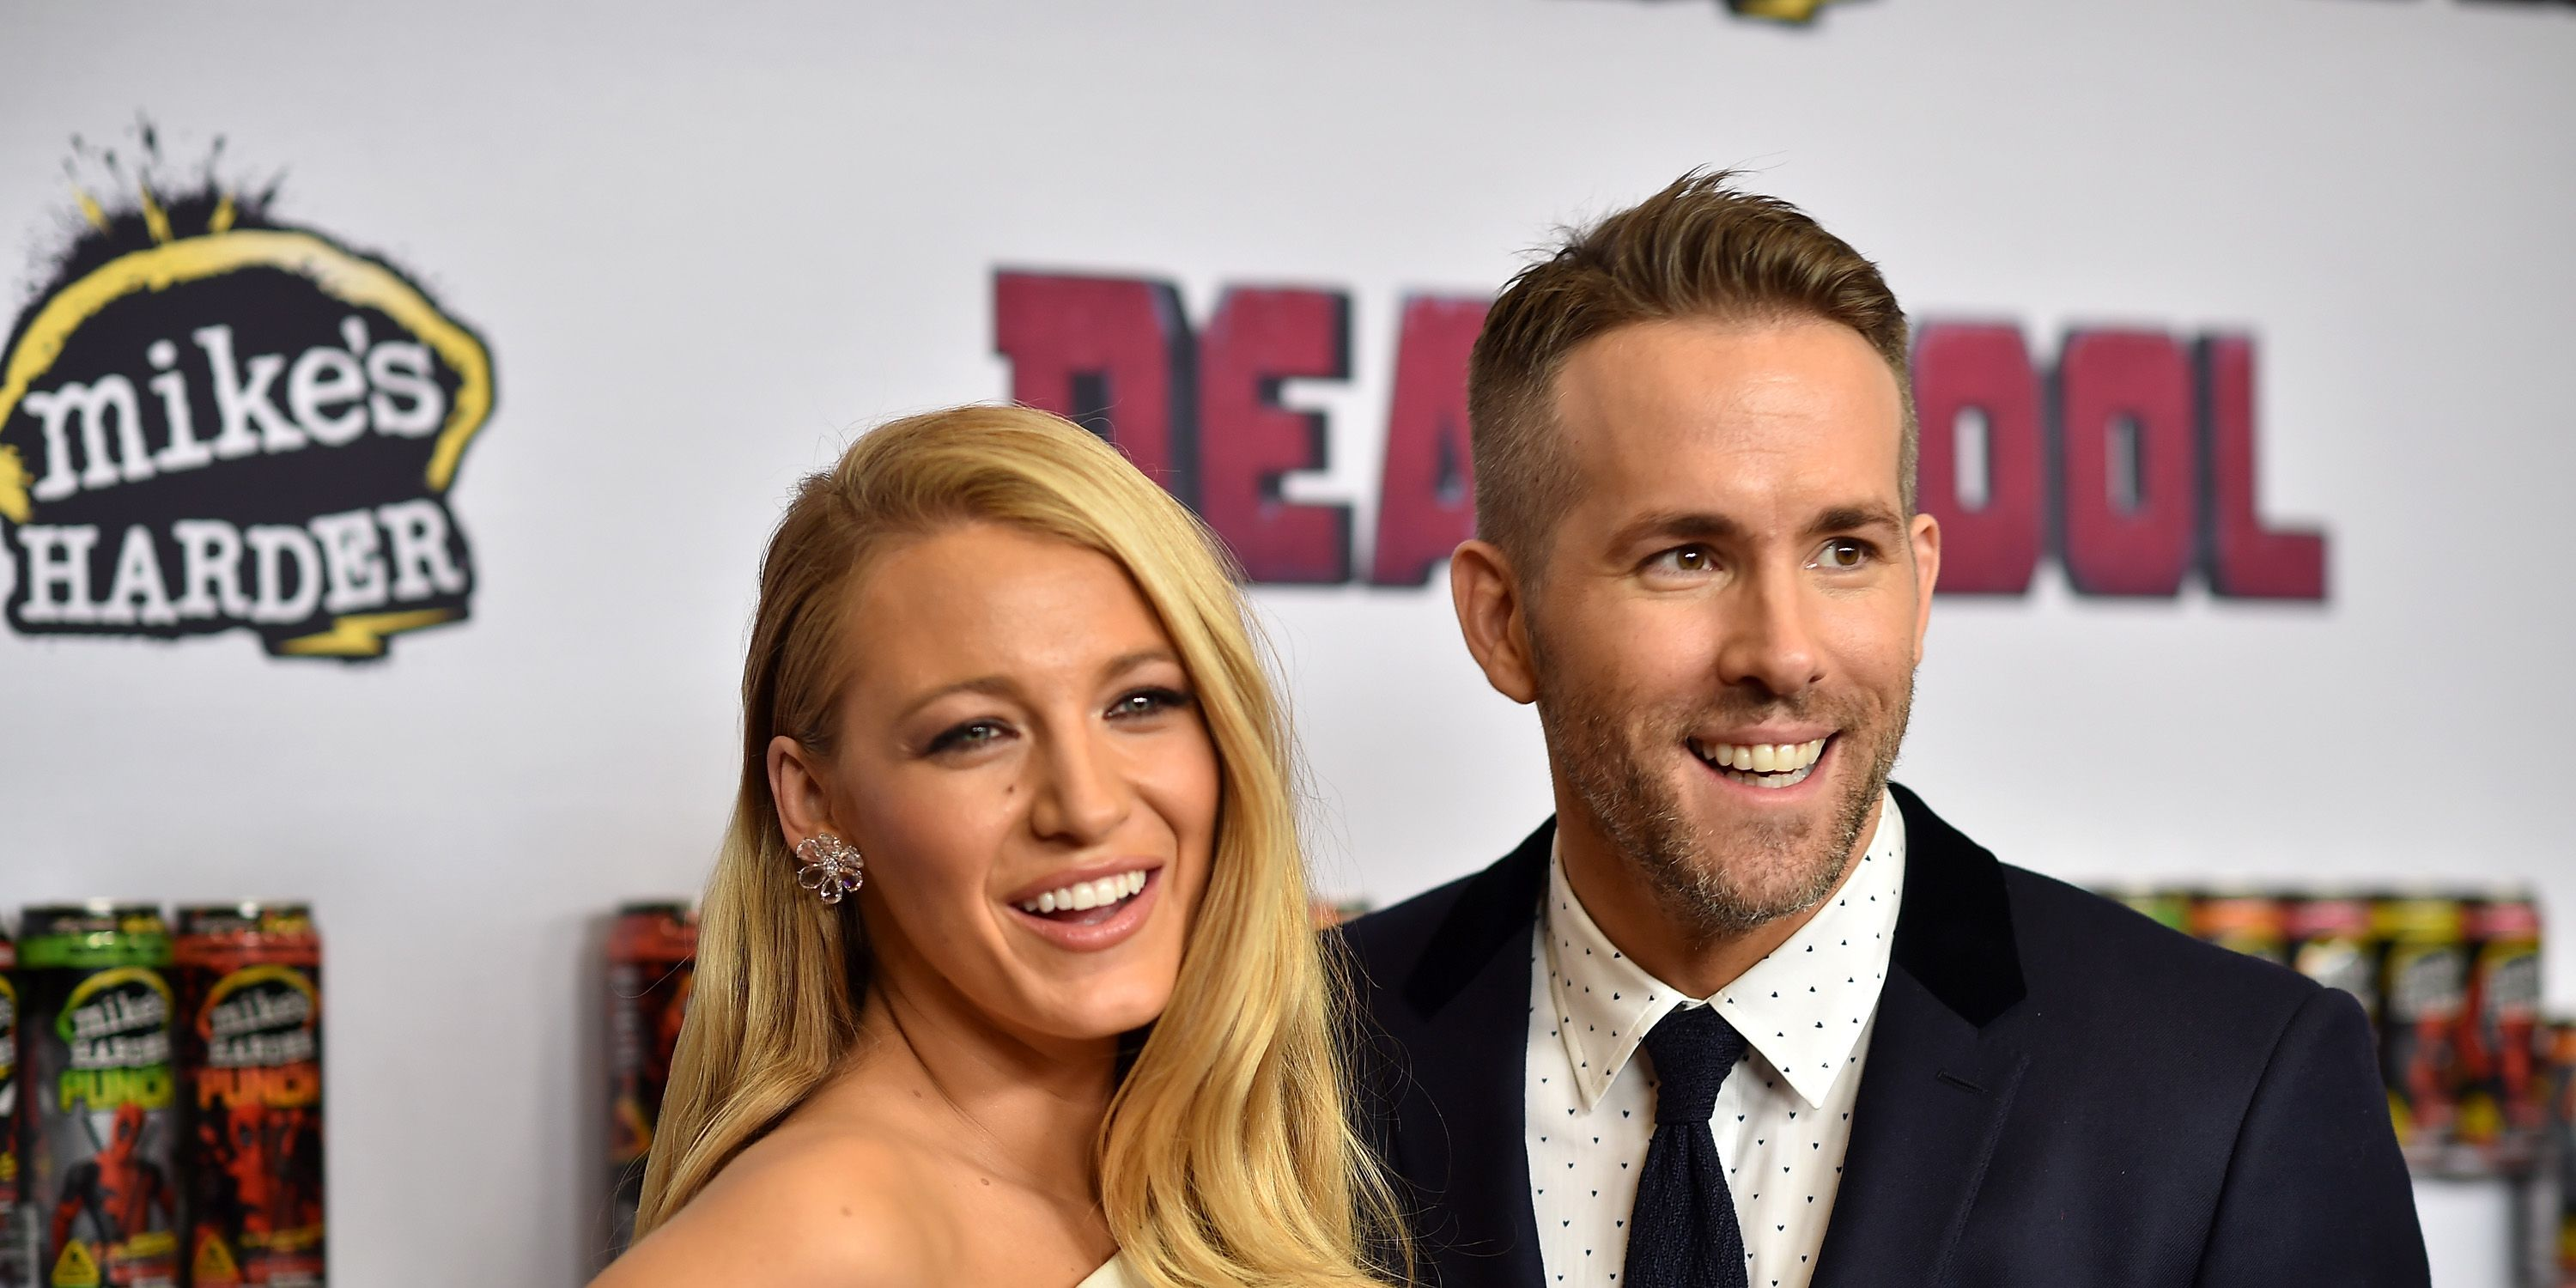 Ryan Reynolds just implied Blake Lively cheated on him 20 times... with ghosts